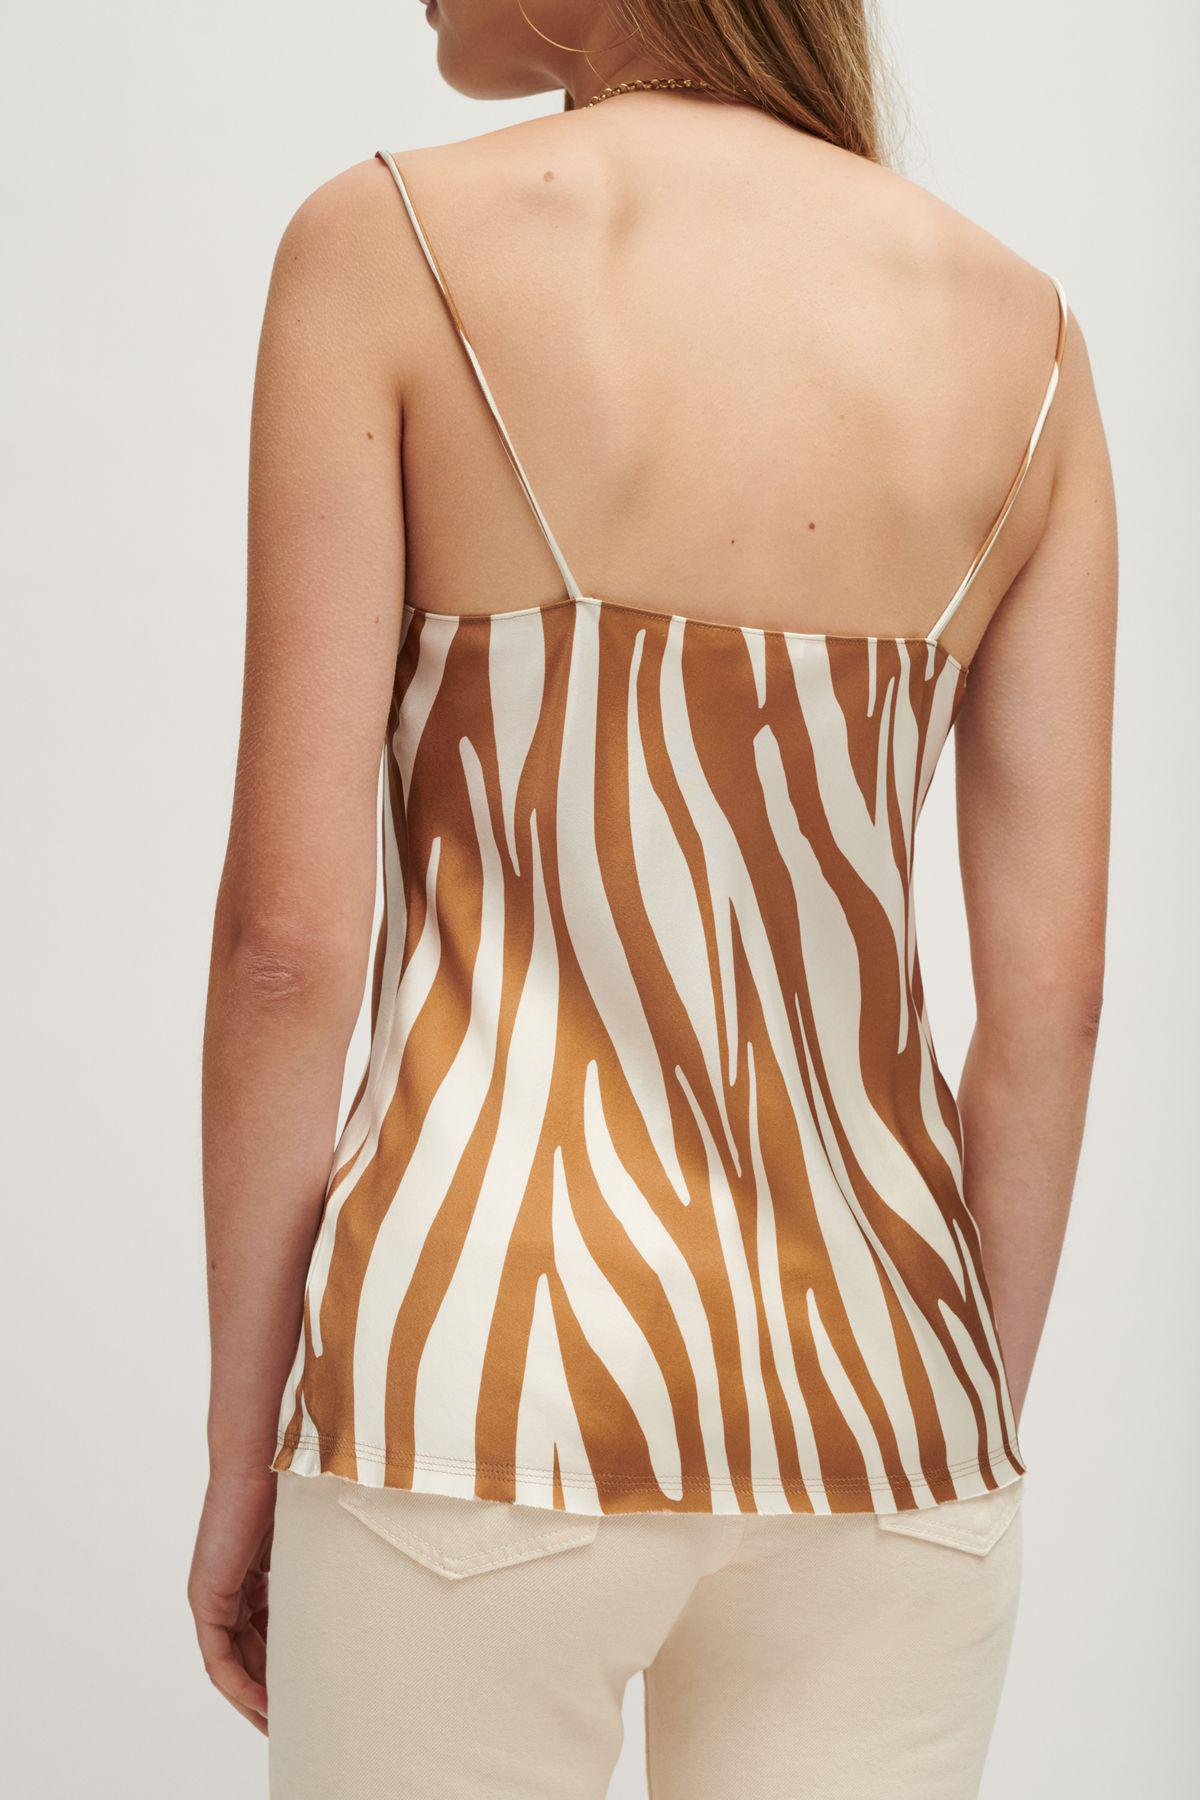 Lucy Camisole 7